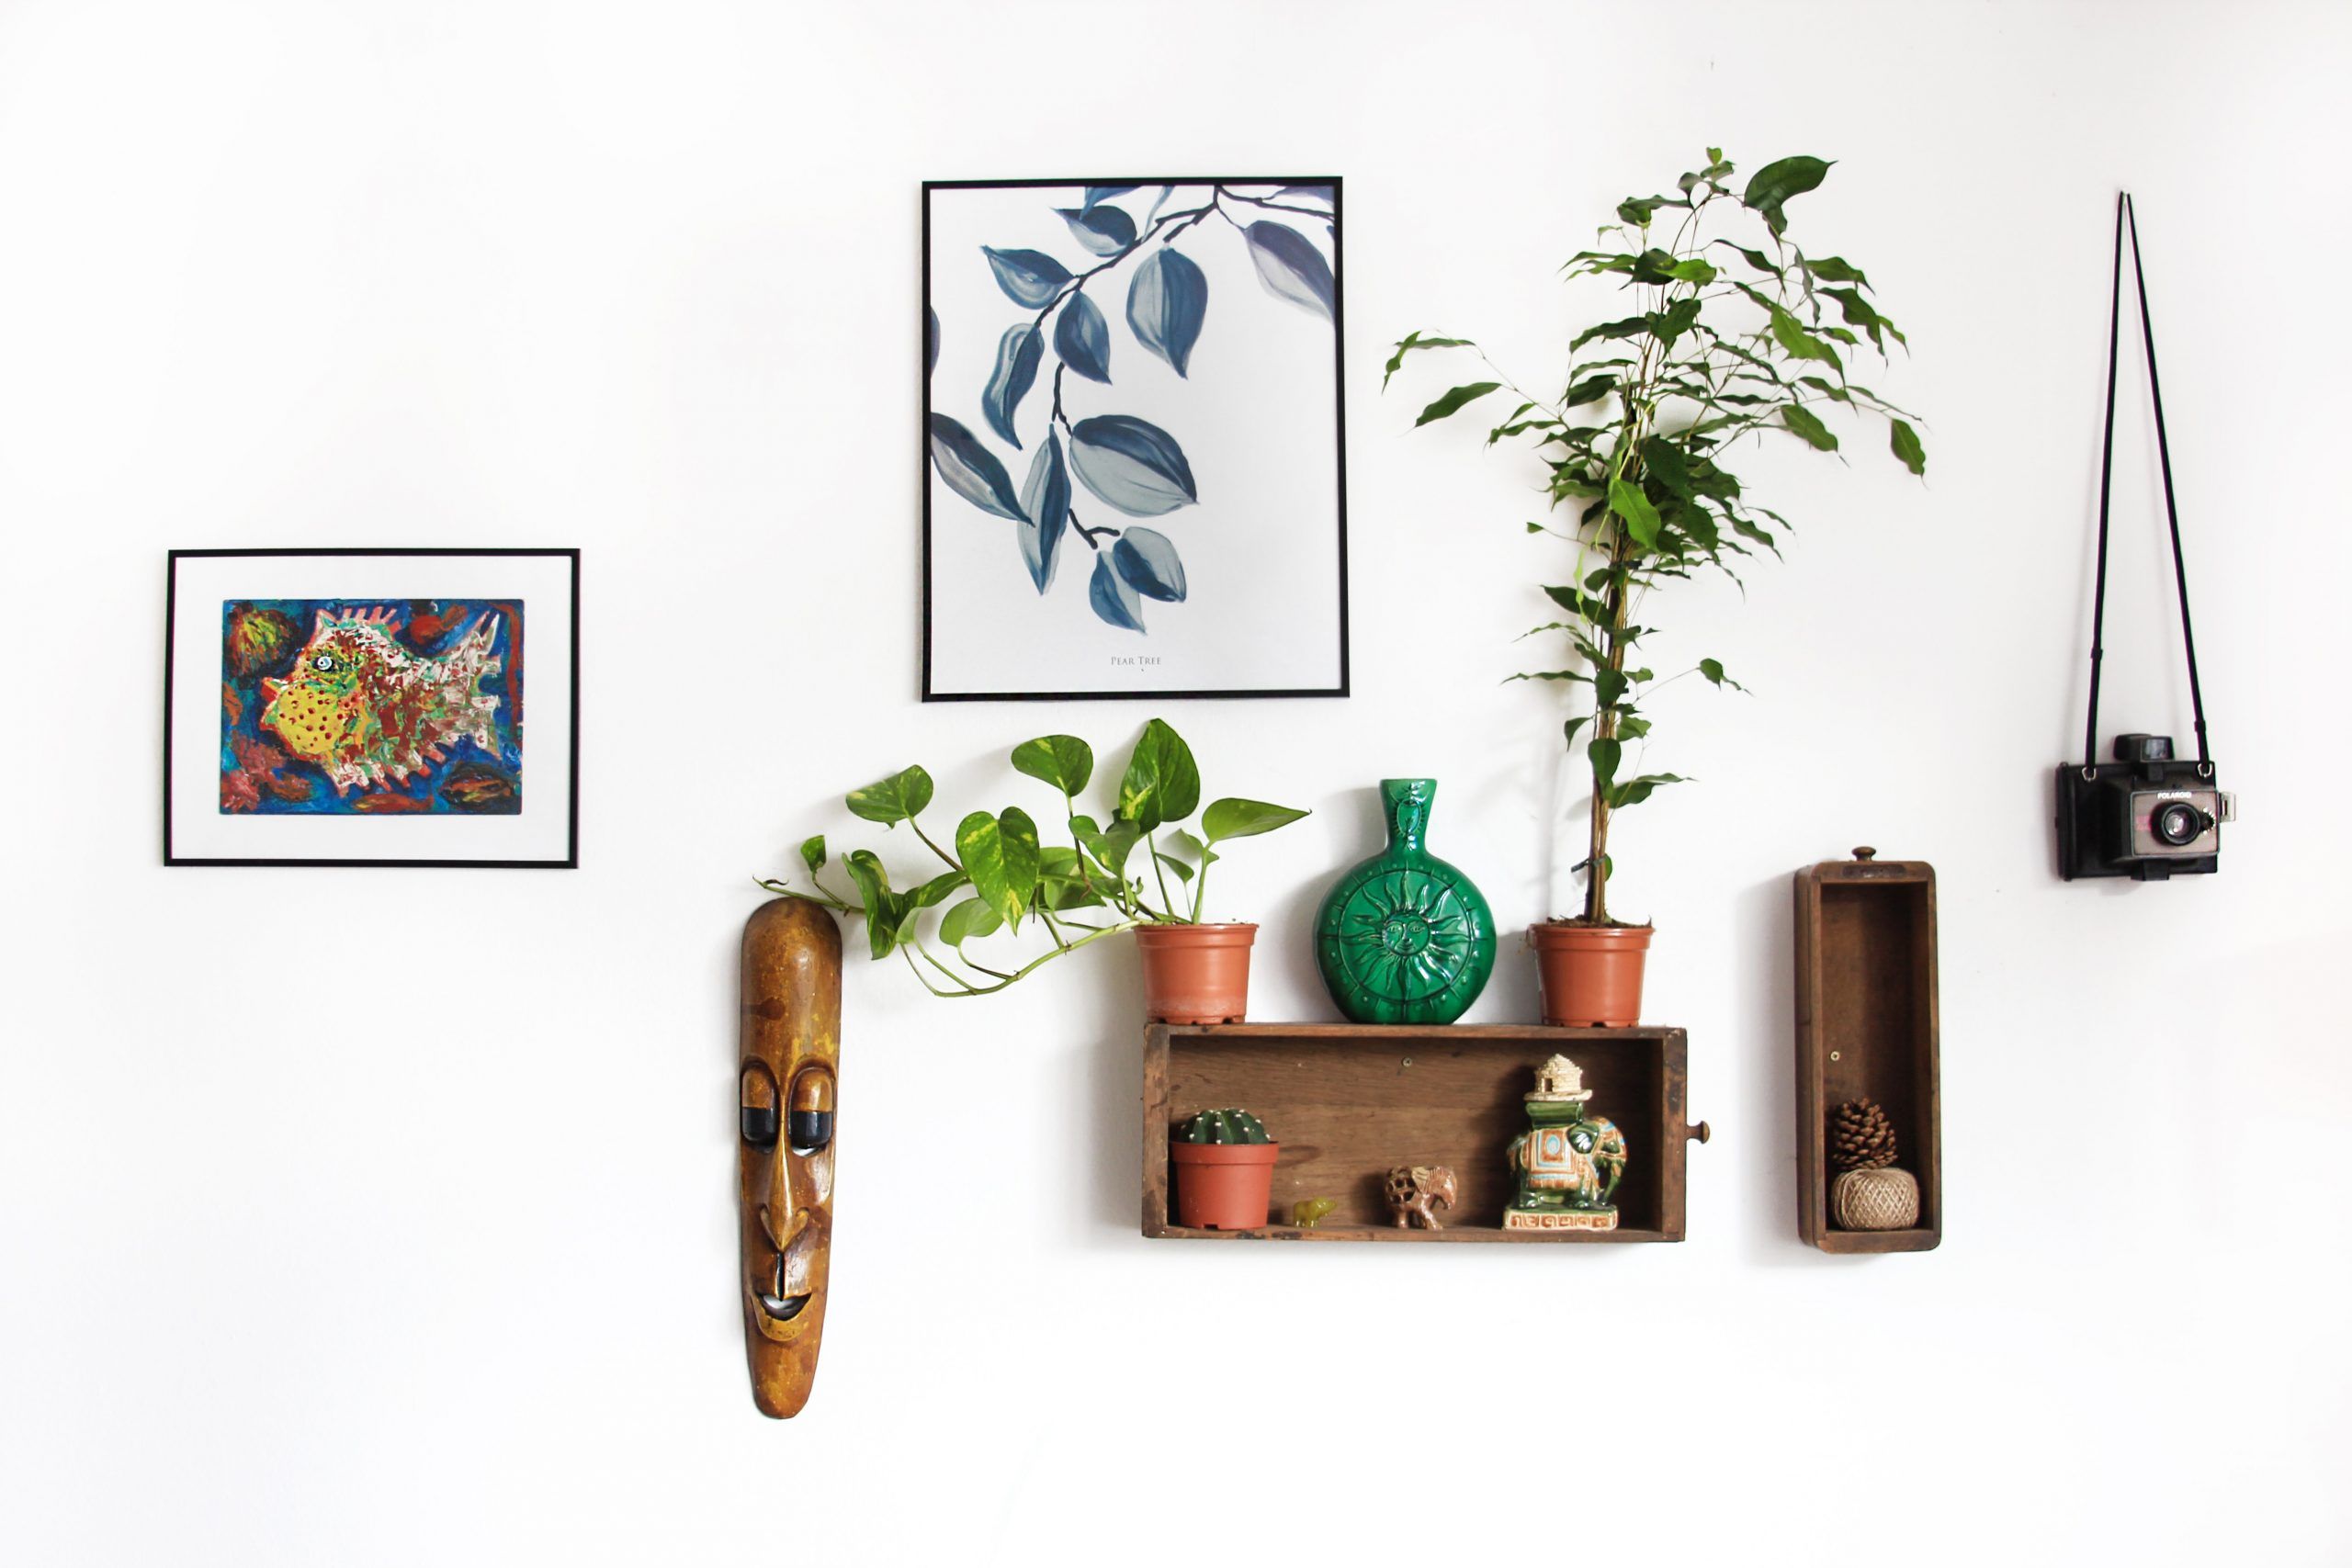 hanging plants and art